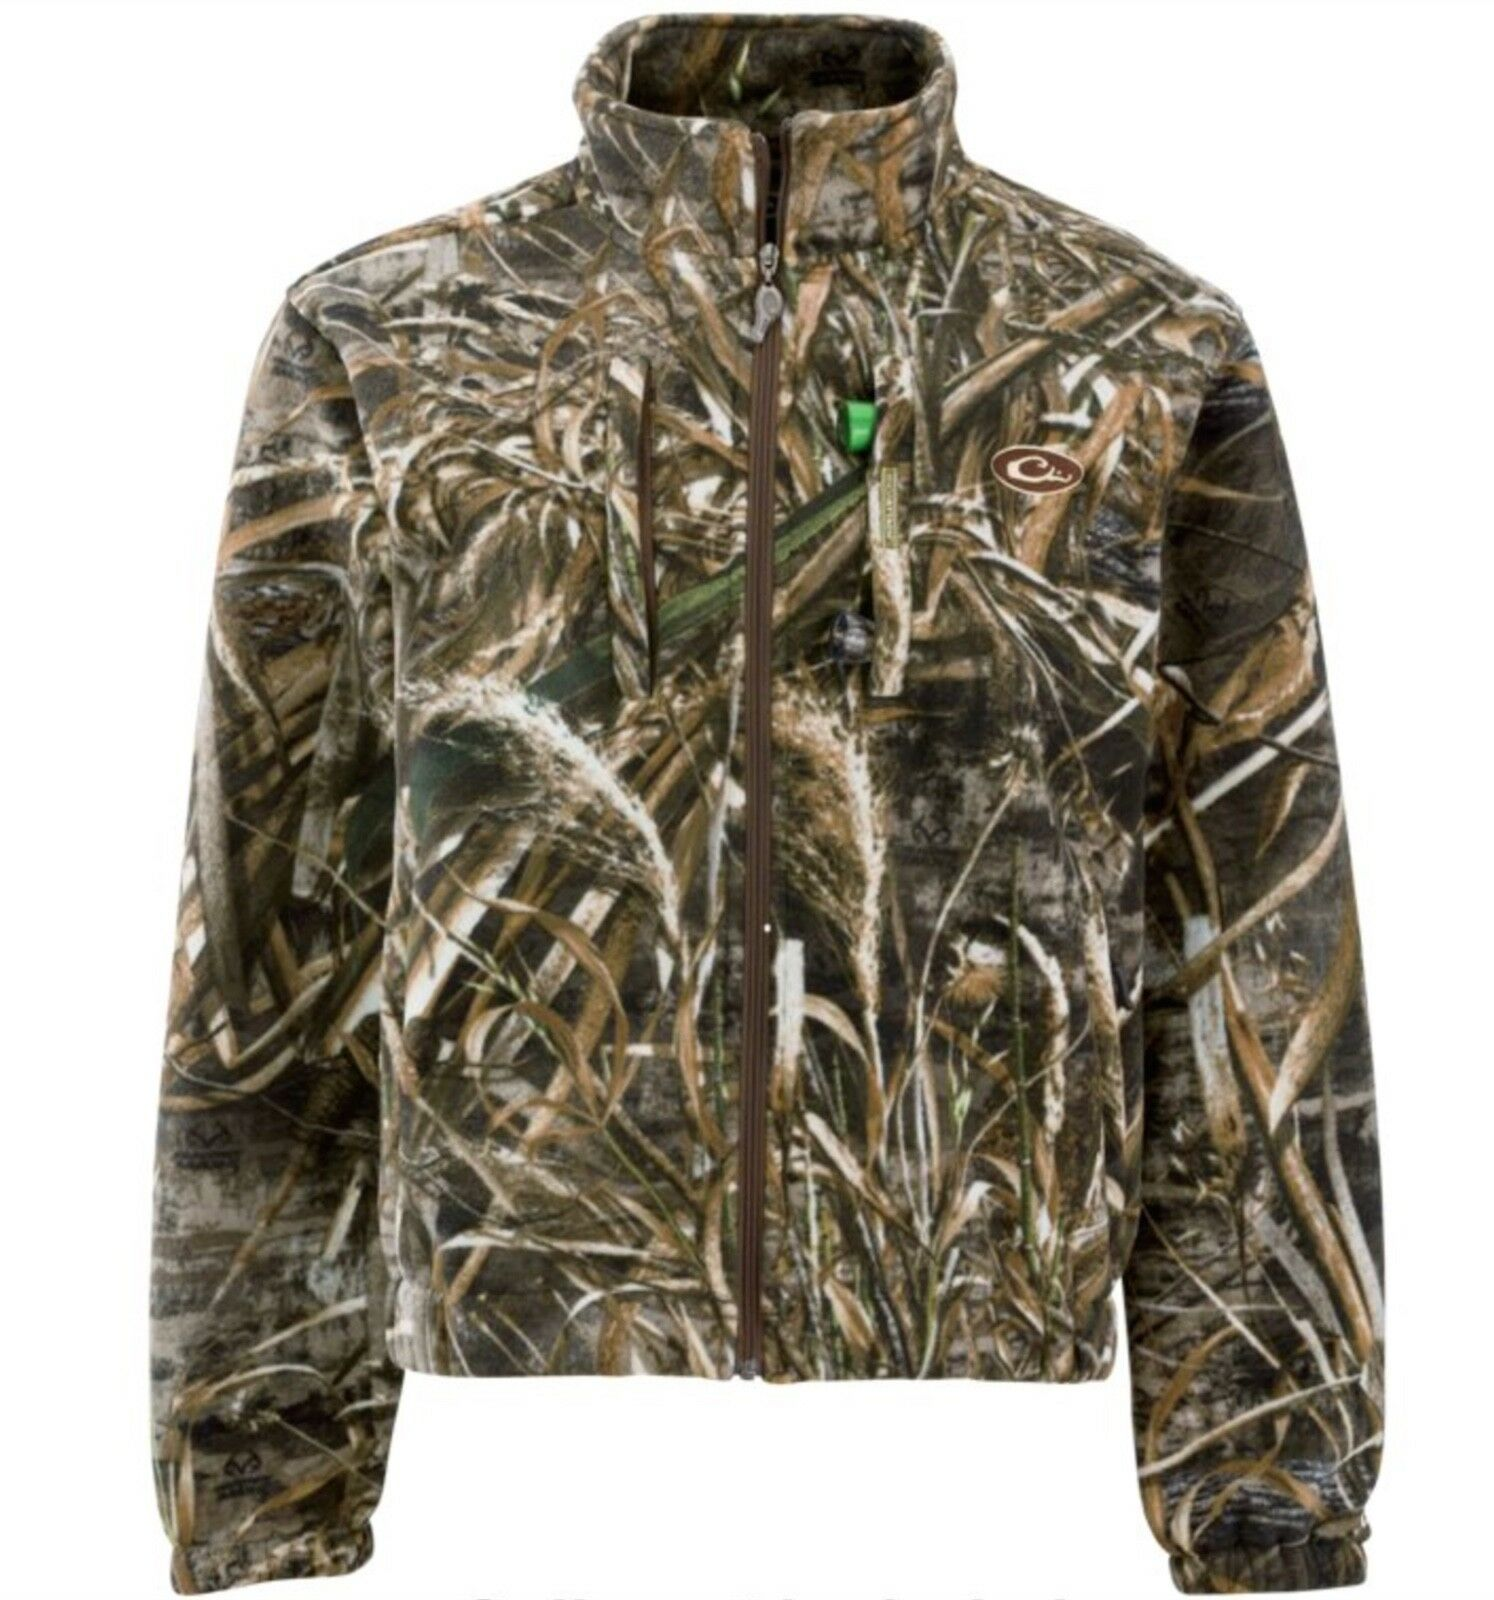 Drake Wasservögel MST Layering Fleece Full Zip Jacket Wasserdicht & amp;Winddichtes DW215